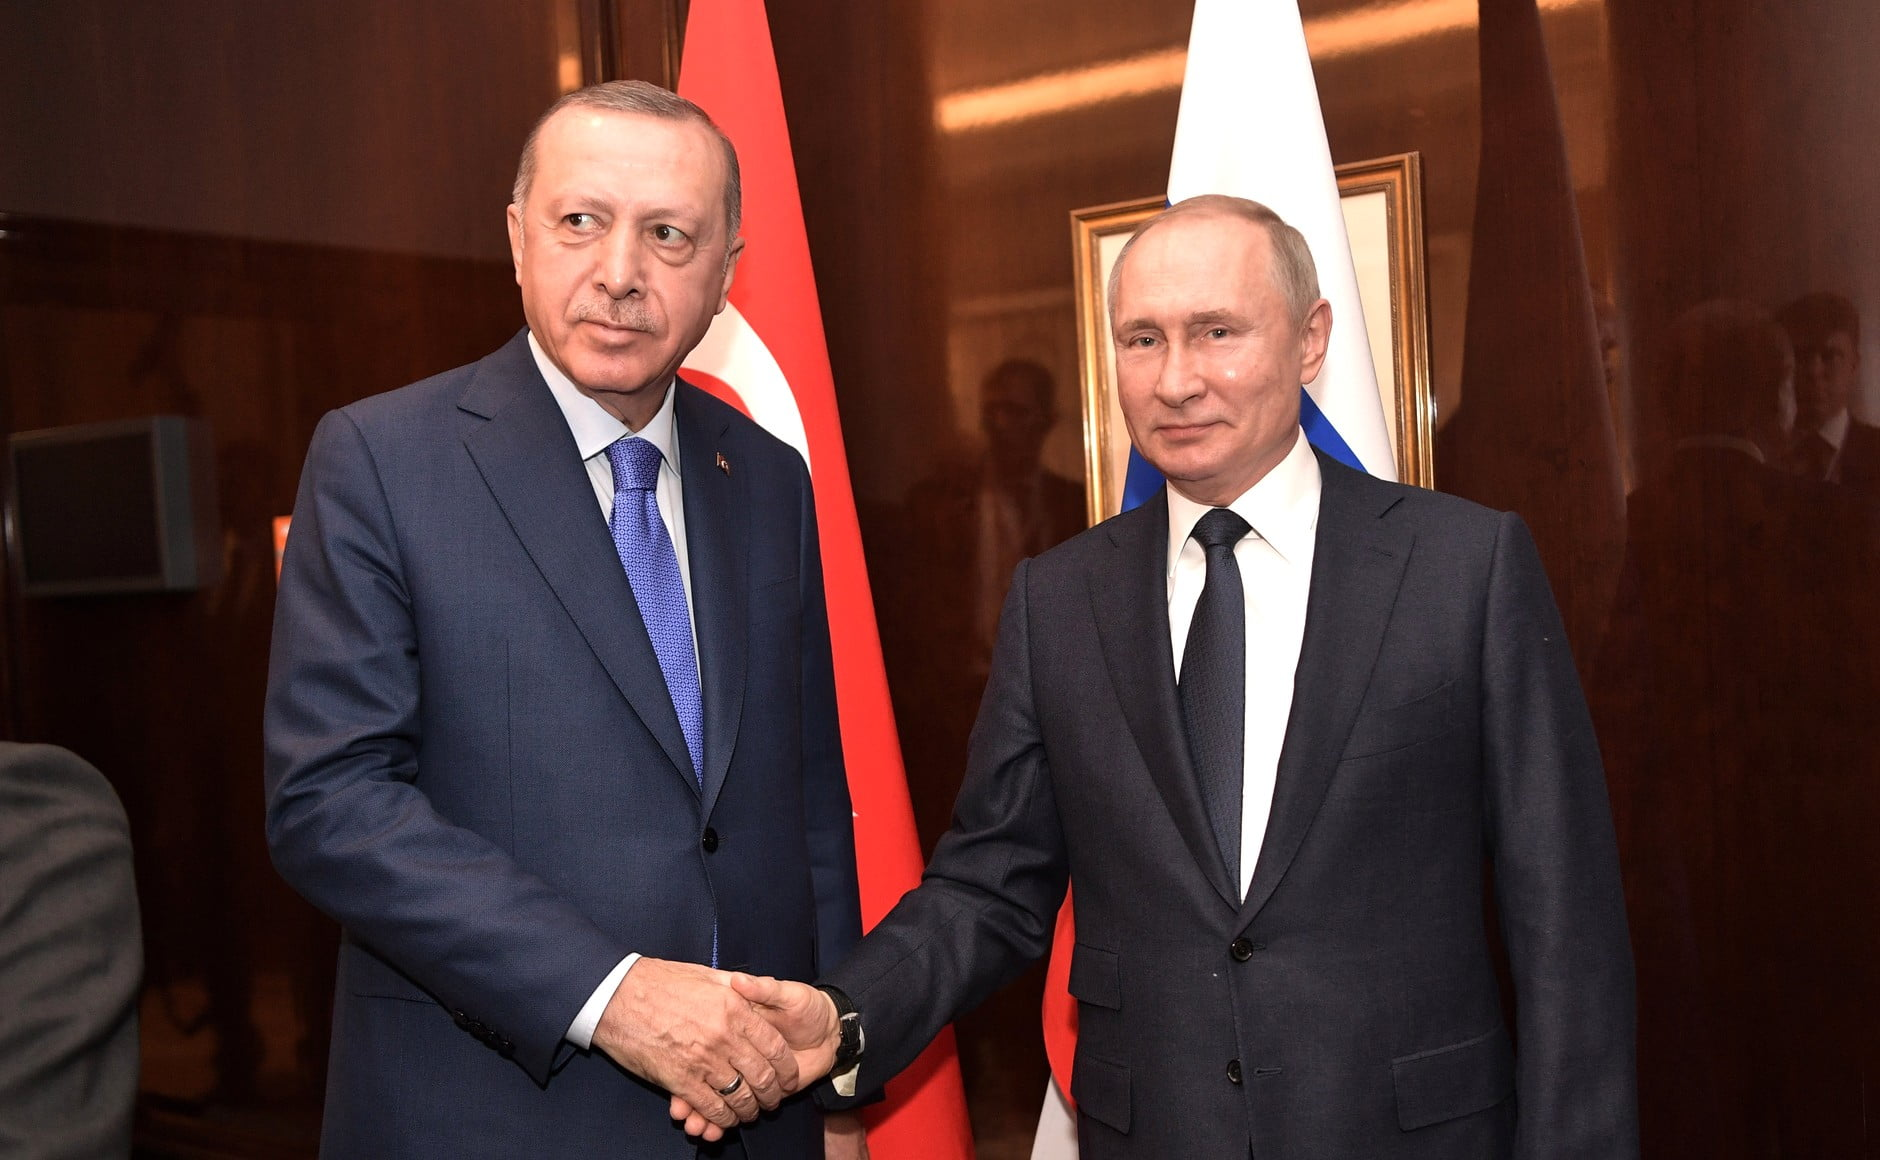 Erdogan and Putin Officially Invite Trump to Join Axis of Evil